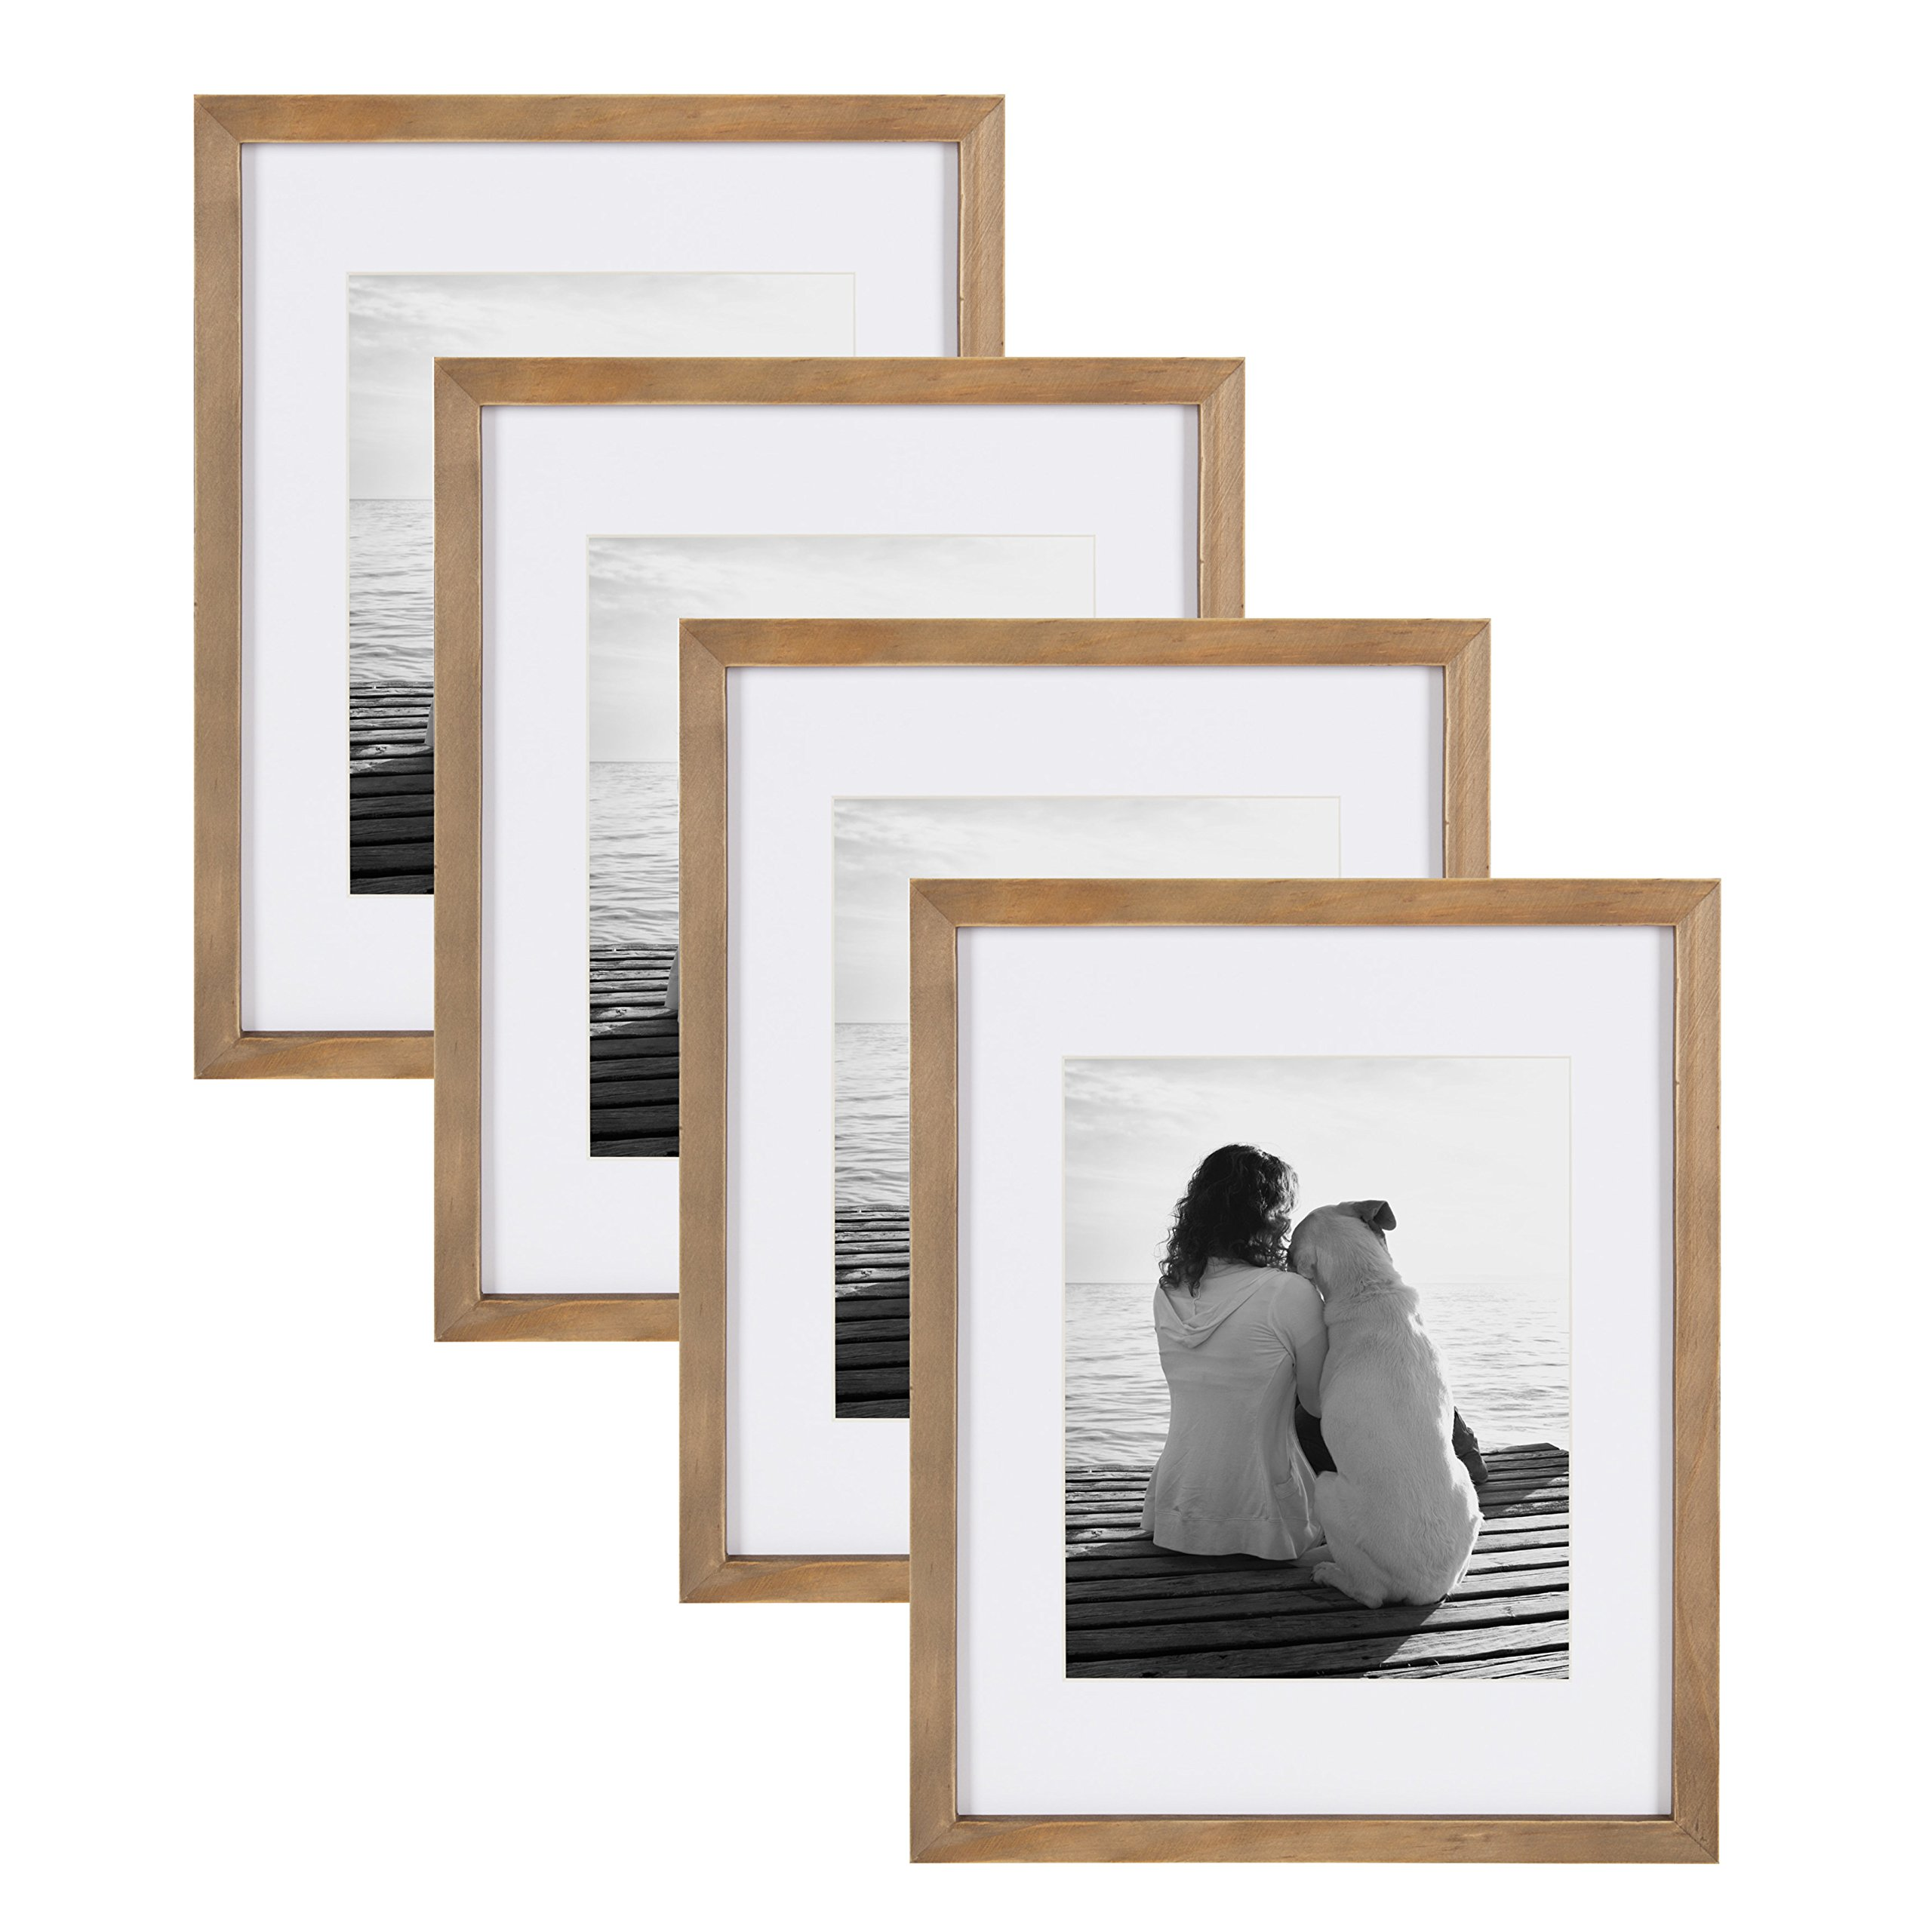 DesignOvation Gallery Picture Frame, 11x14 matted to 8x10, Rustic Brown